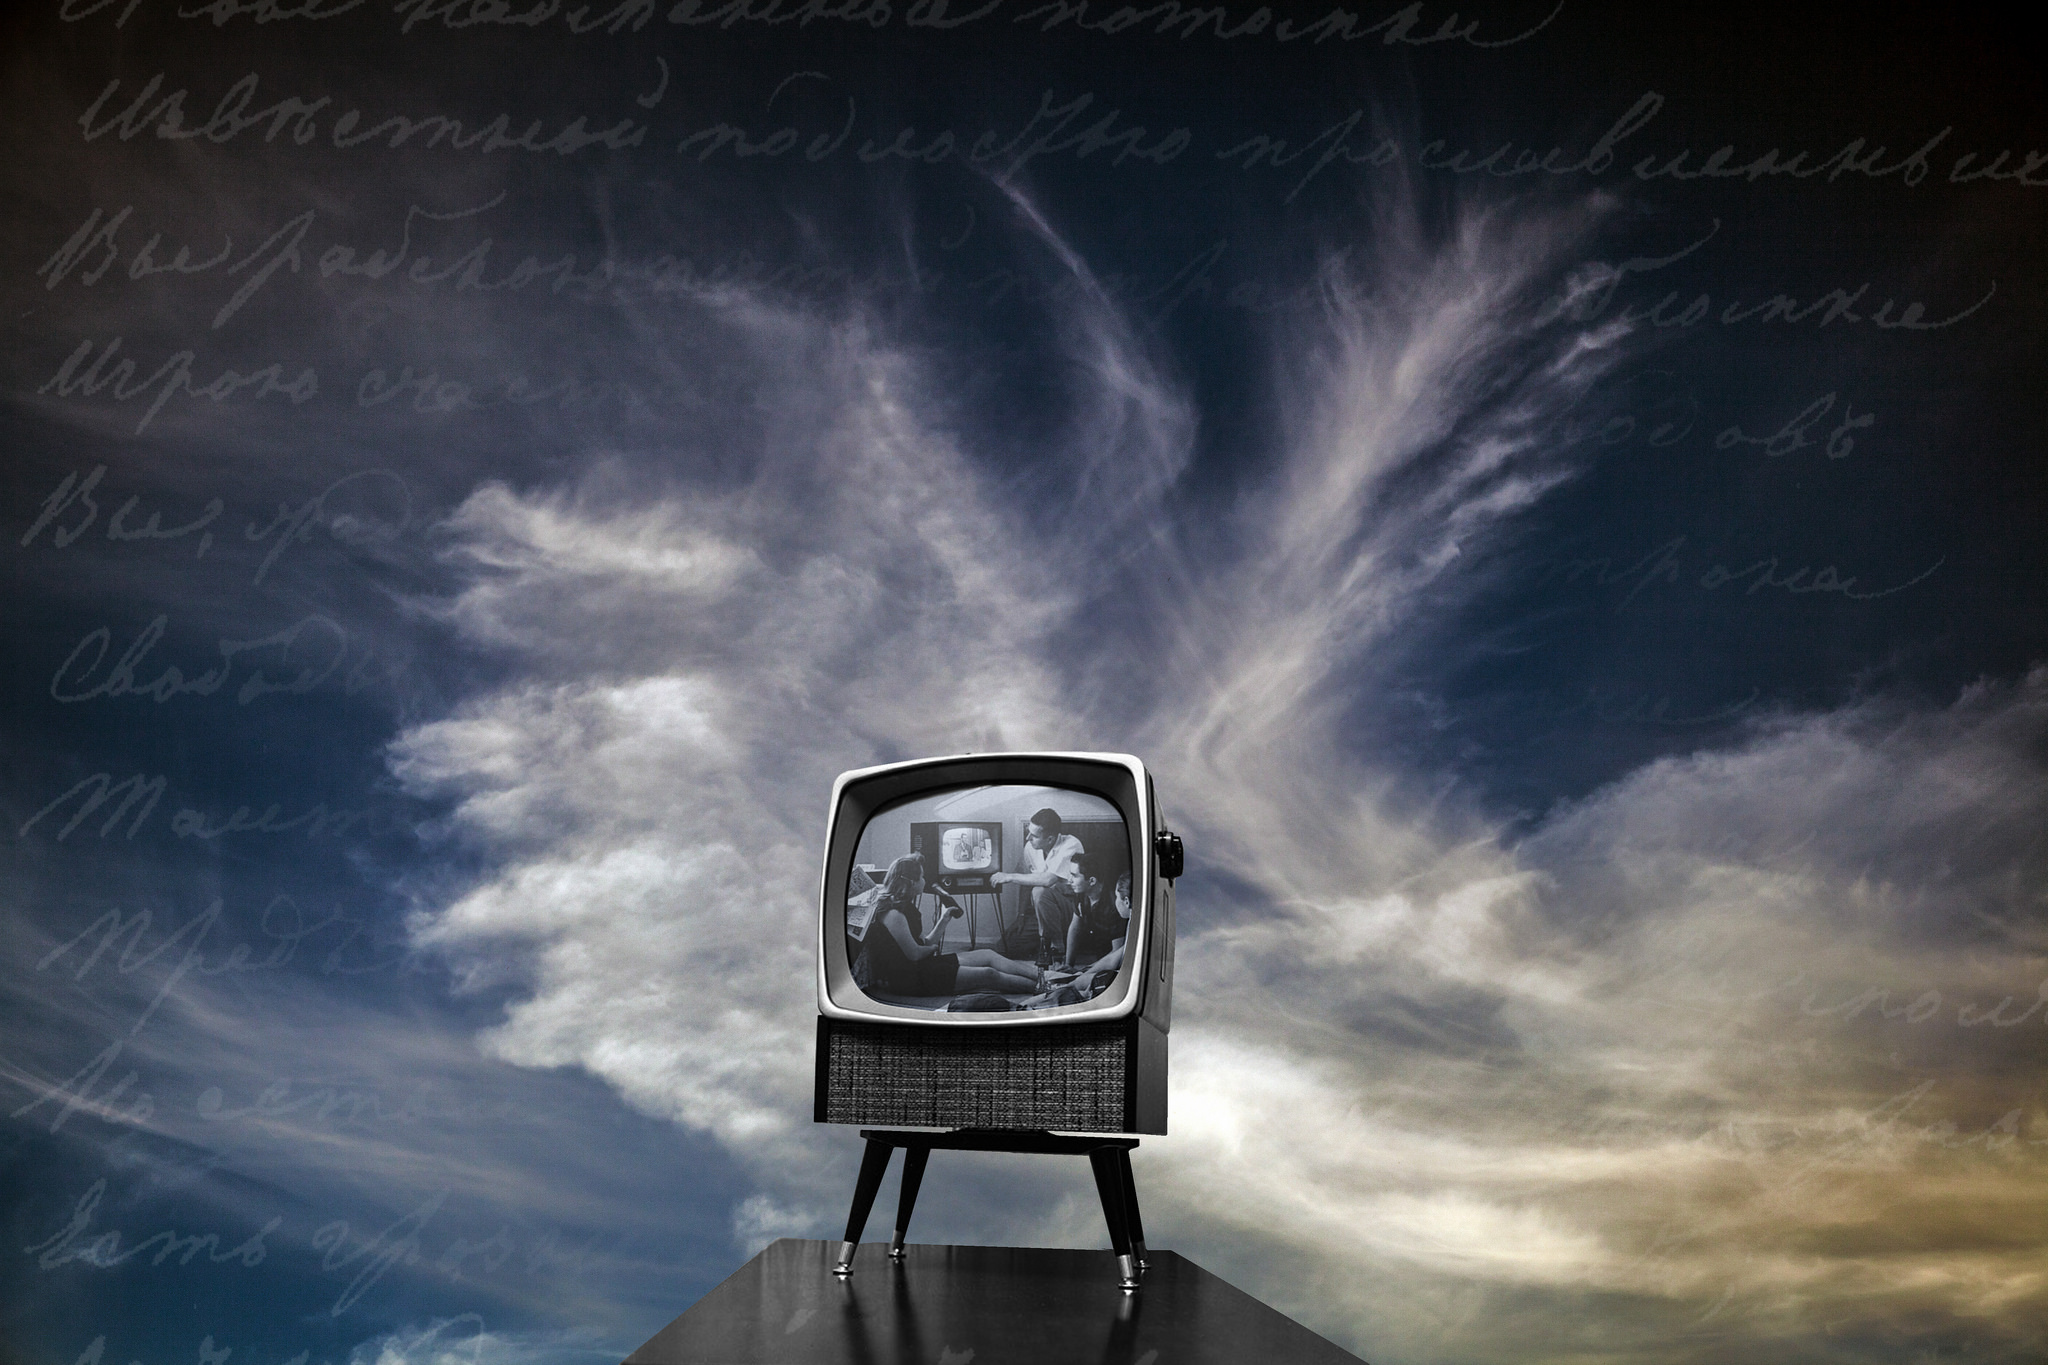 Photograph of an old-fashioned television set, up against the background of a cloudy sky. On the screen, a black and white image of a family watching television.